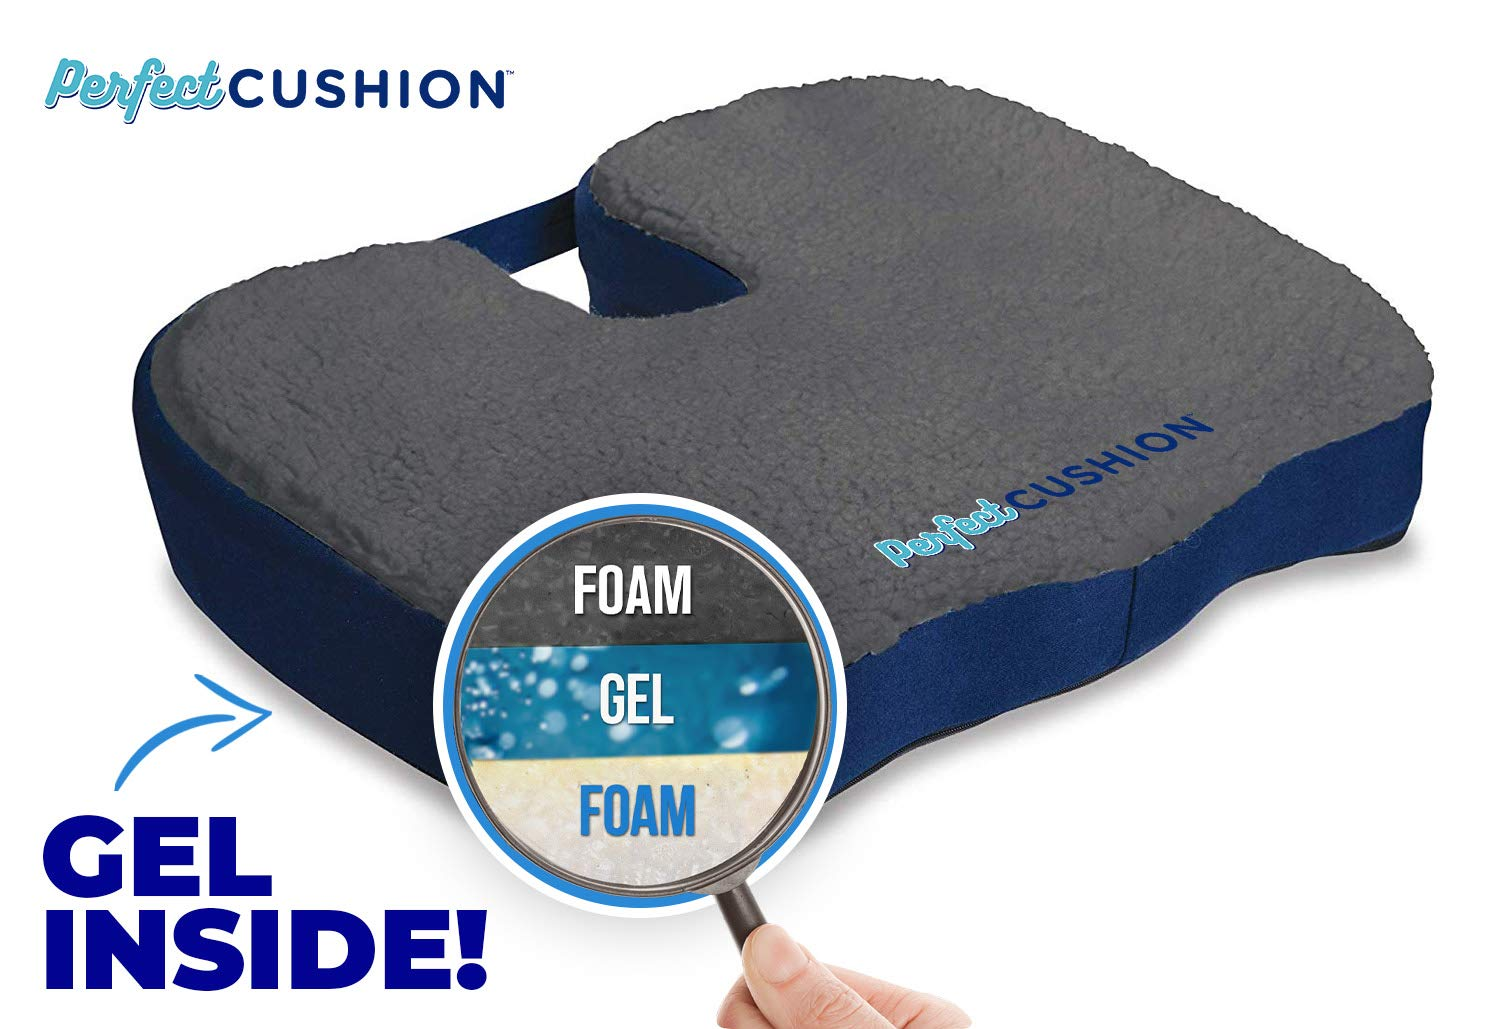 Perfect Cushion Charcoal Infused Memory Foam & Gel Seat; Quality & Therapeutic Comfort Designed to Cradle & Support Your Body; Helps to Relieve Back Hip & Tailbone Pain. Built in Carry Handle by Allstar Innovations